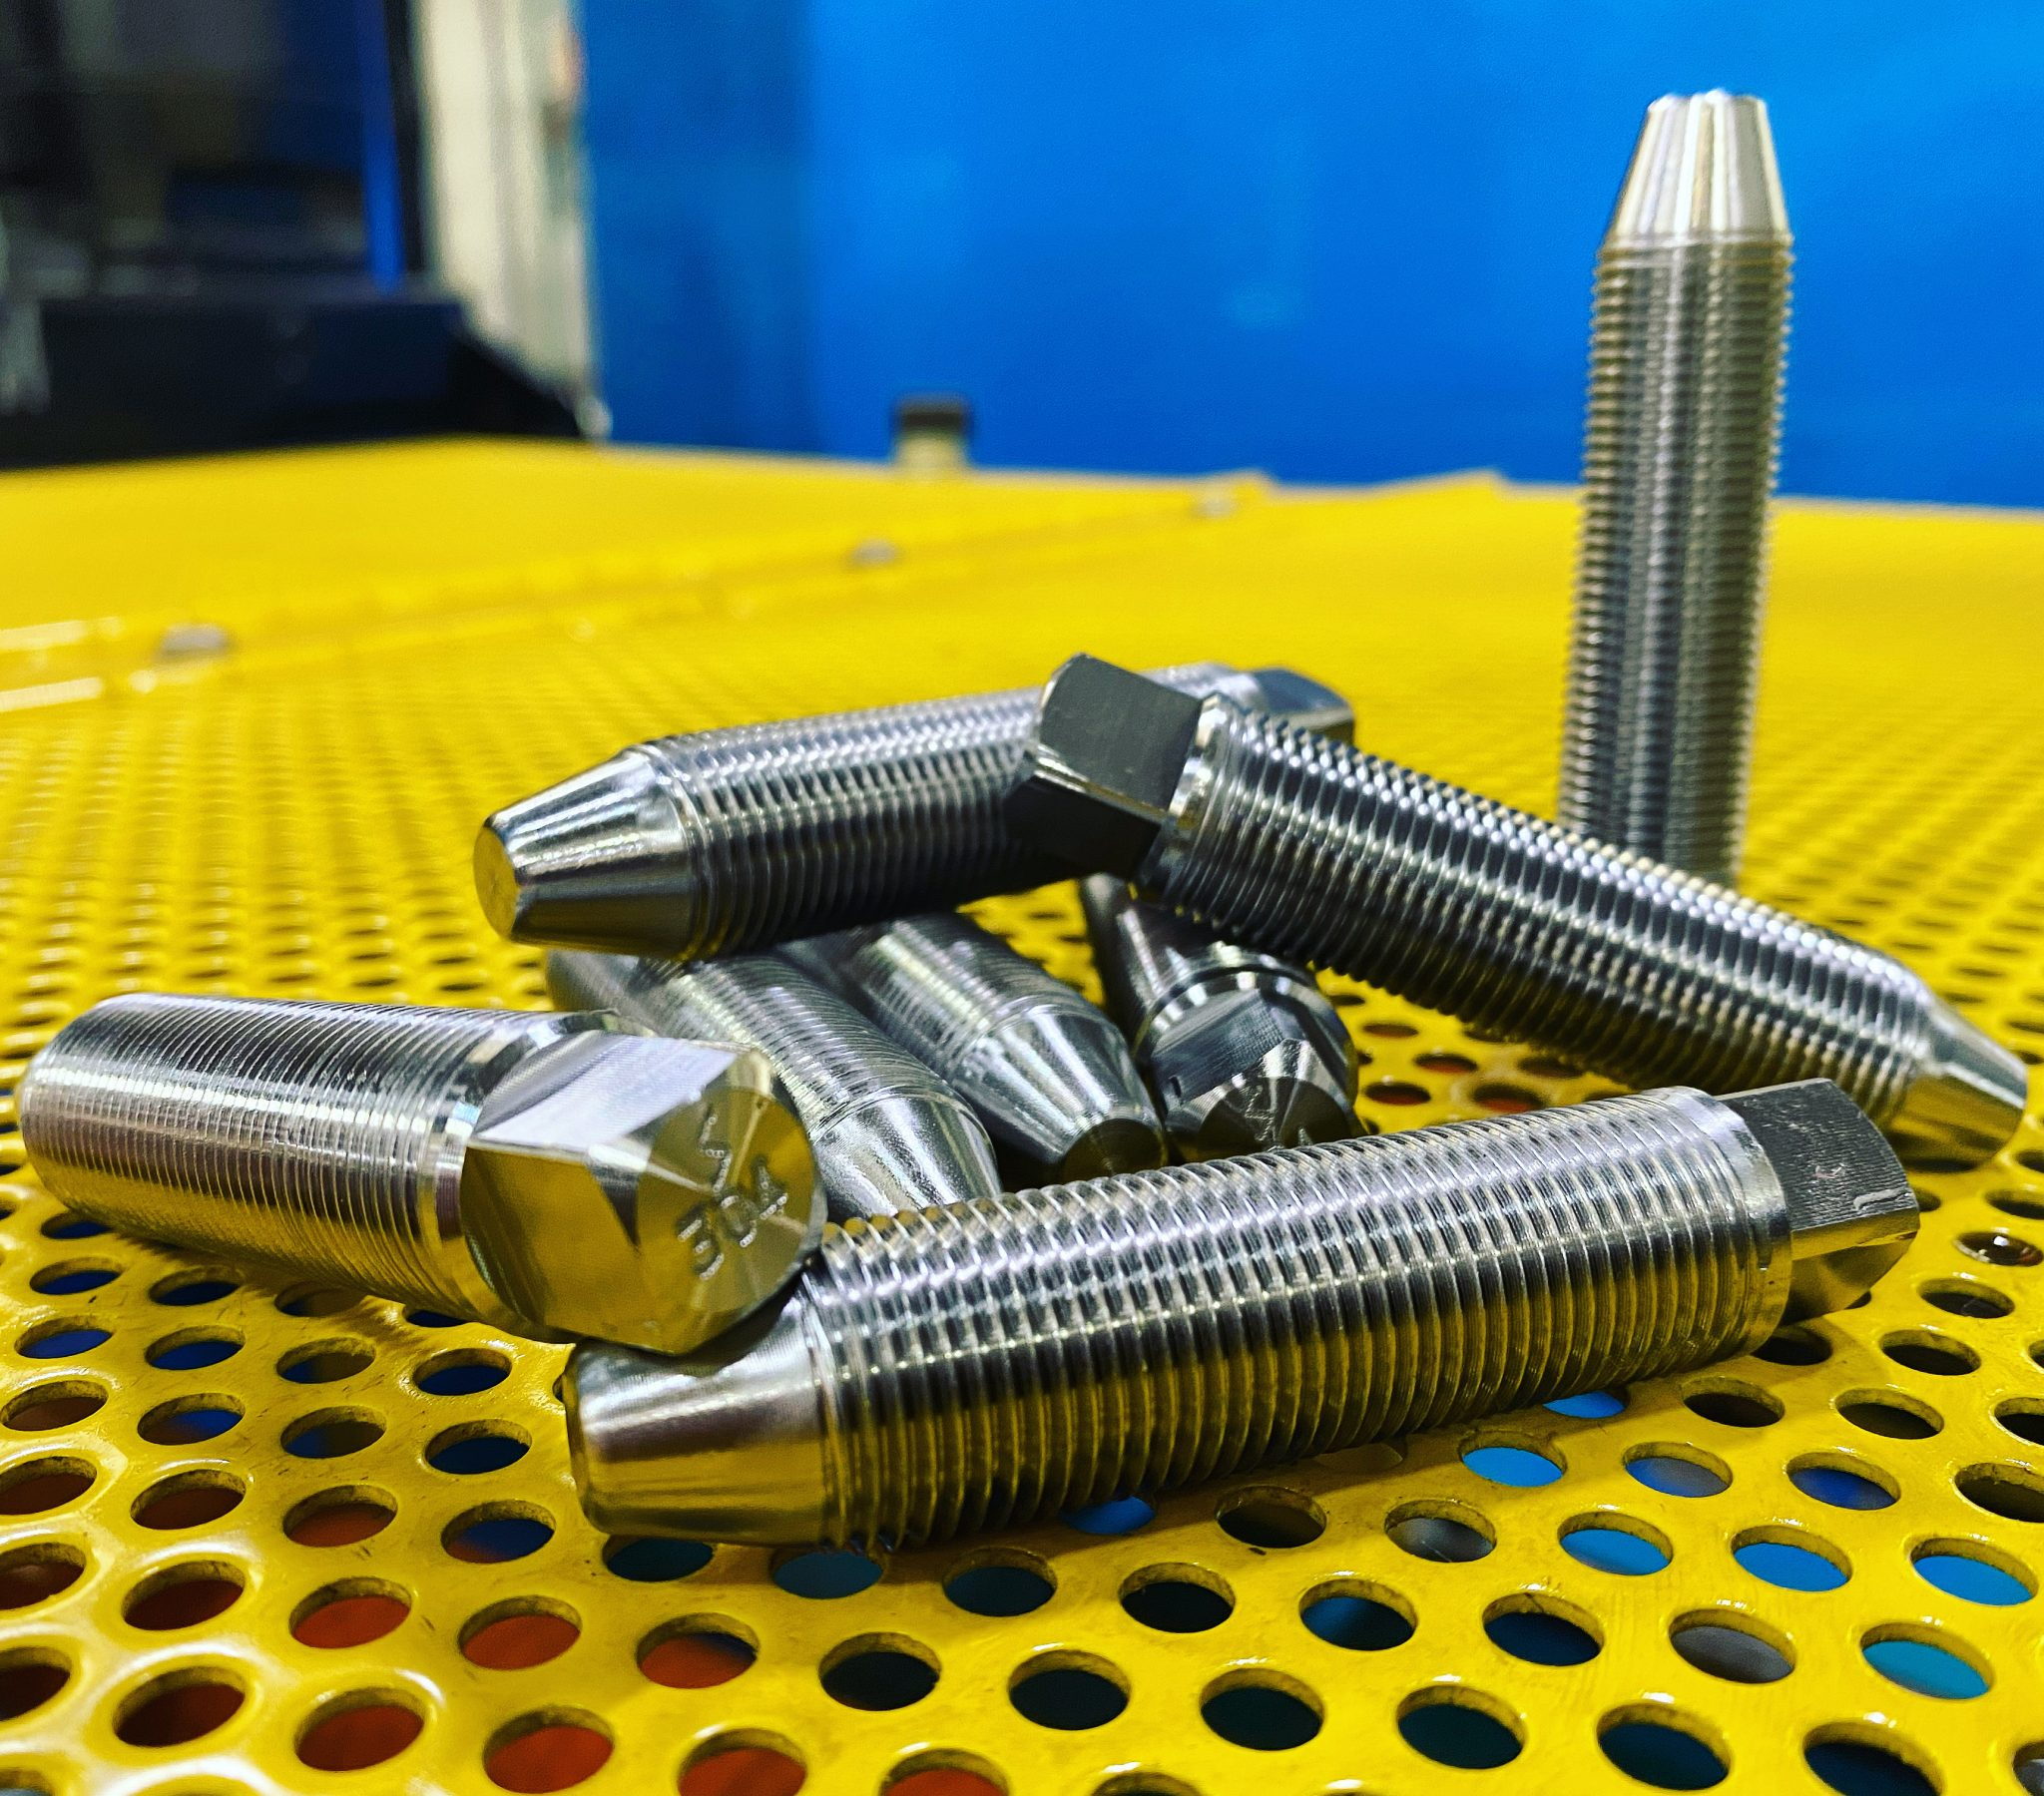 M18 stainless set screw